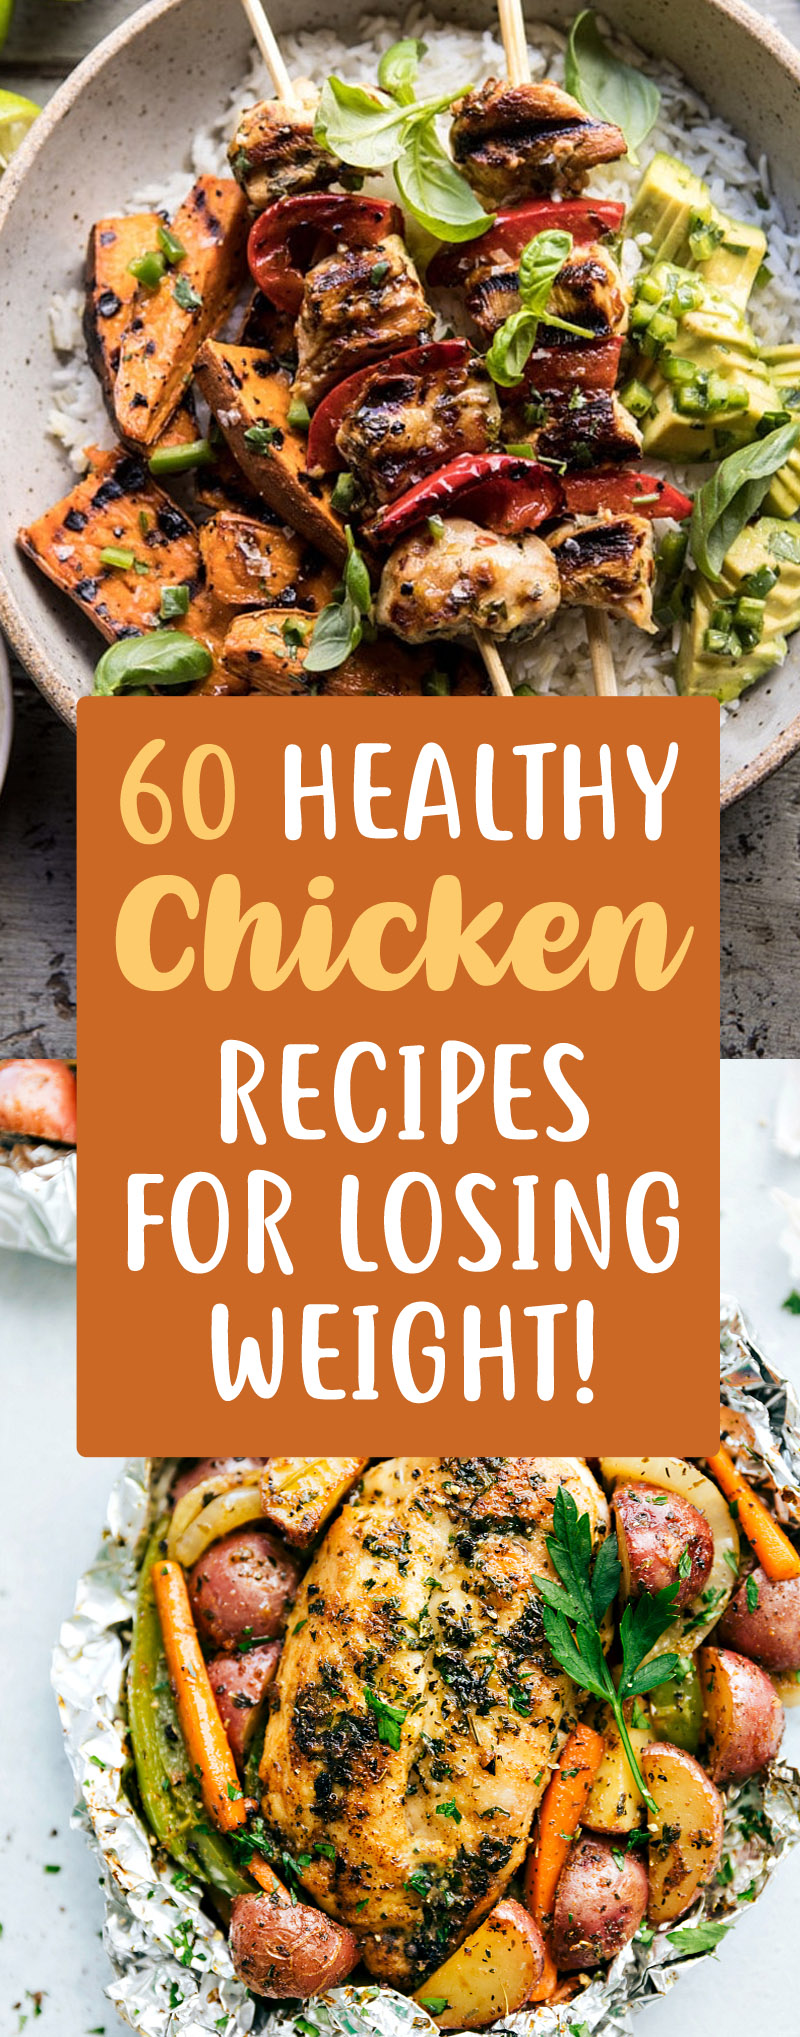 60 Insanely Delicious Chicken Recipes That Can Help You Lose Weight Trimmedandtoned